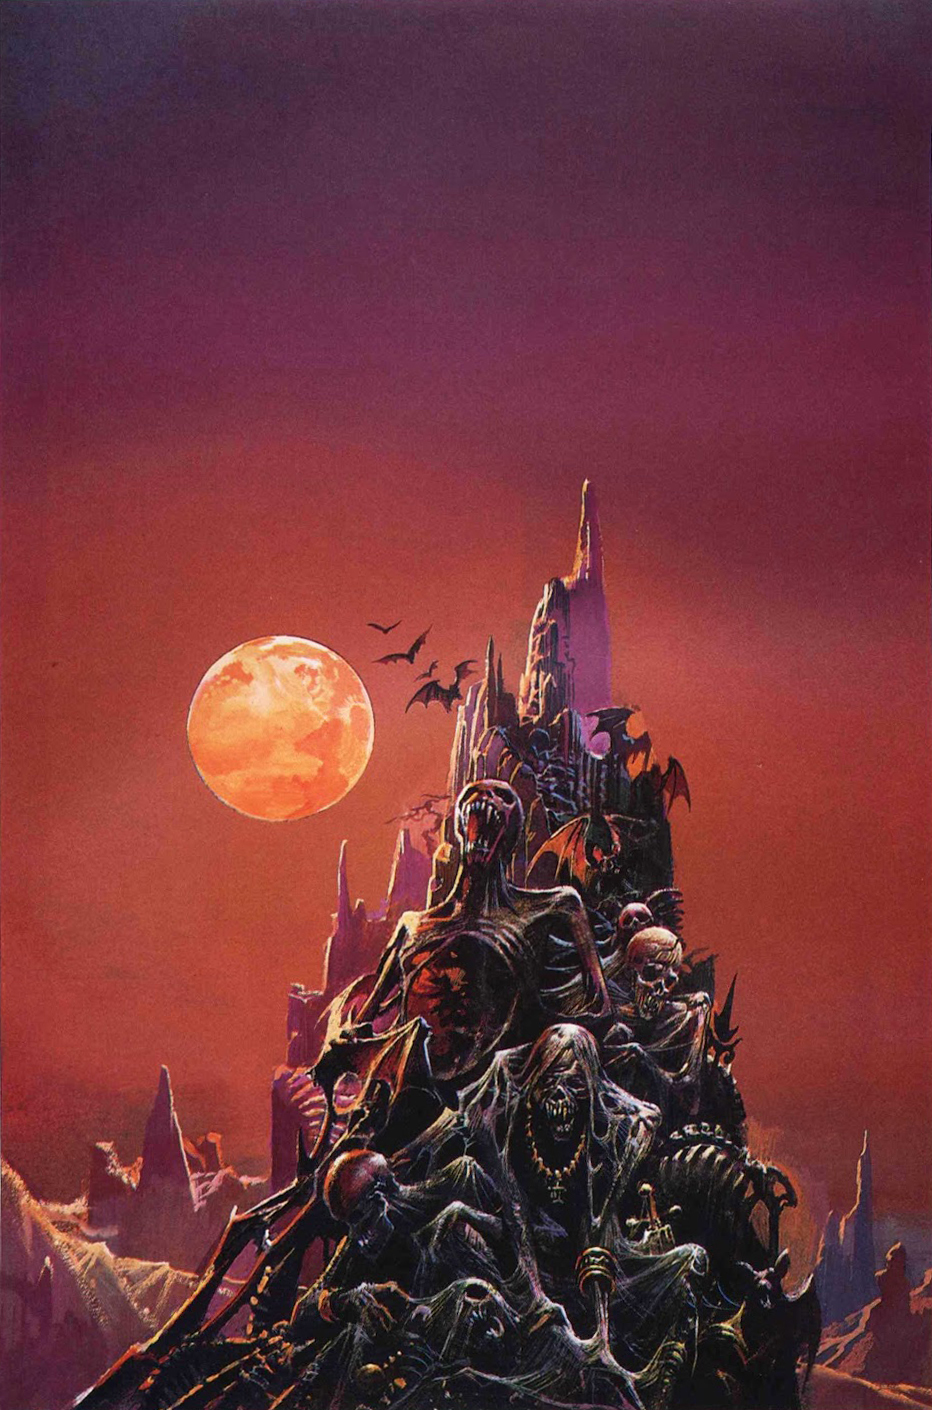 Bruce Pennington - The Horror Horn, 1973